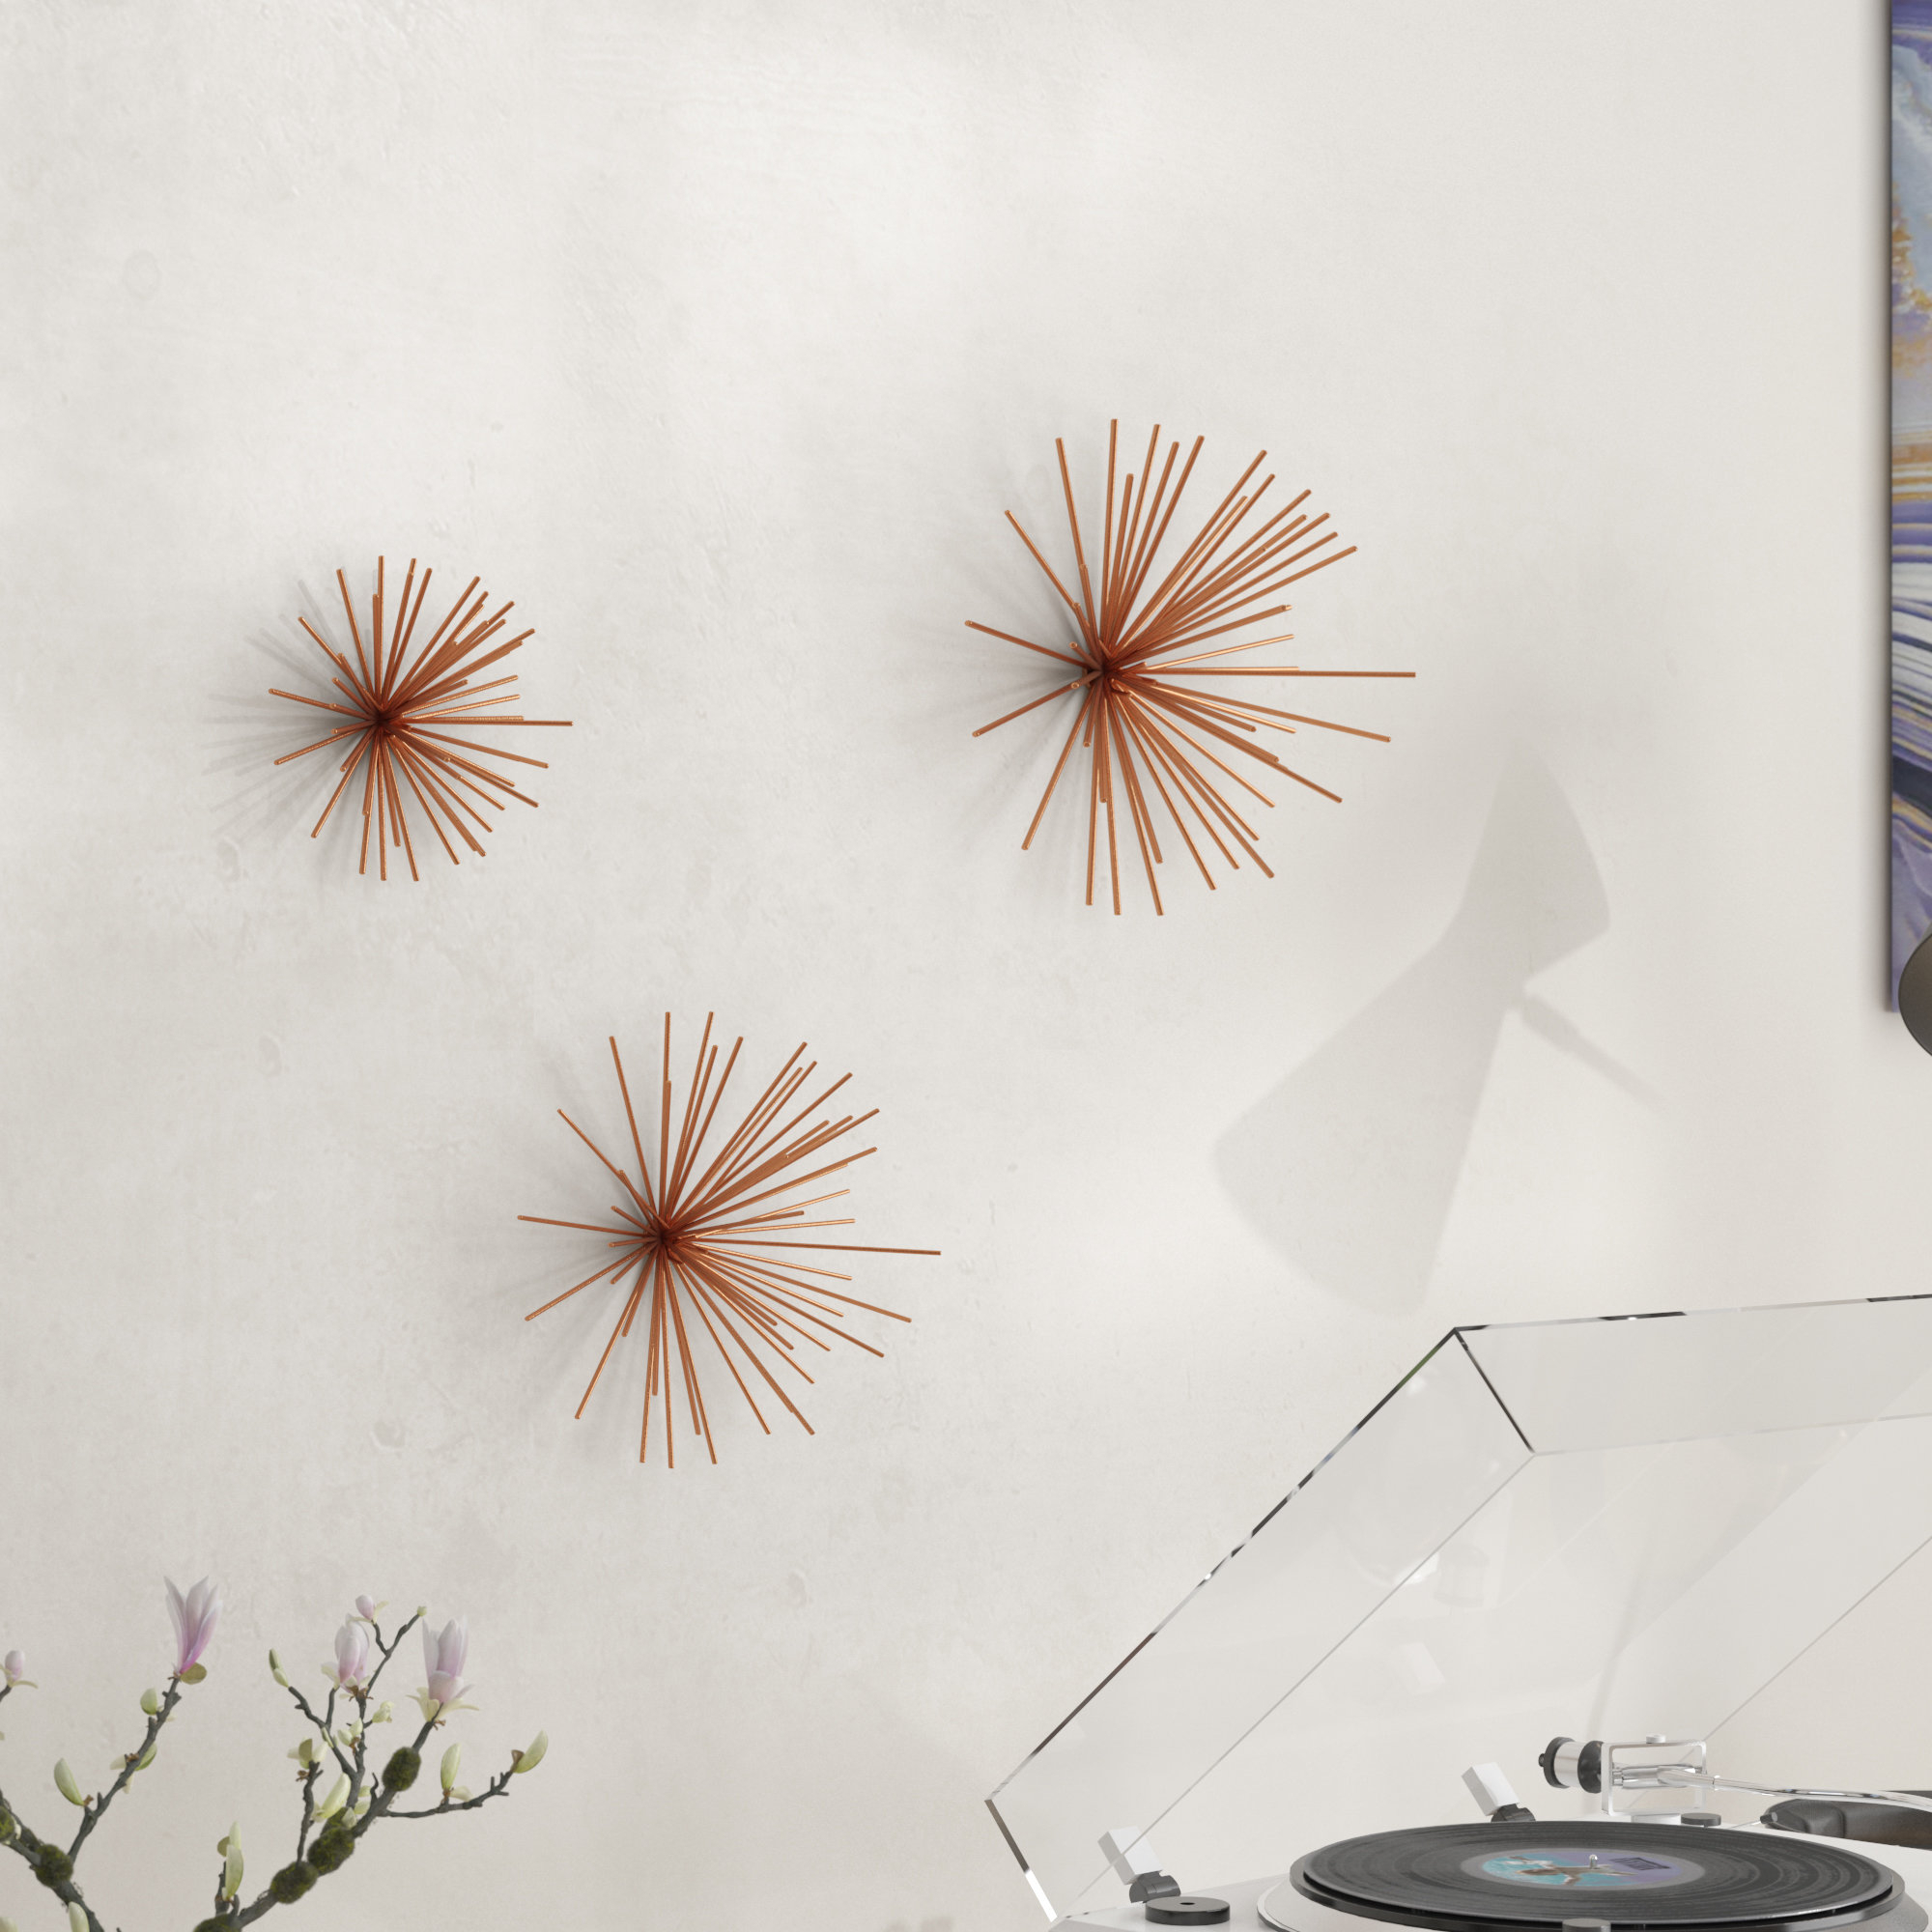 Langley Street 3 Piece Decorative Metal Star Wall Decor Set Intended For 3 Piece Star Wall Decor Sets (View 22 of 30)